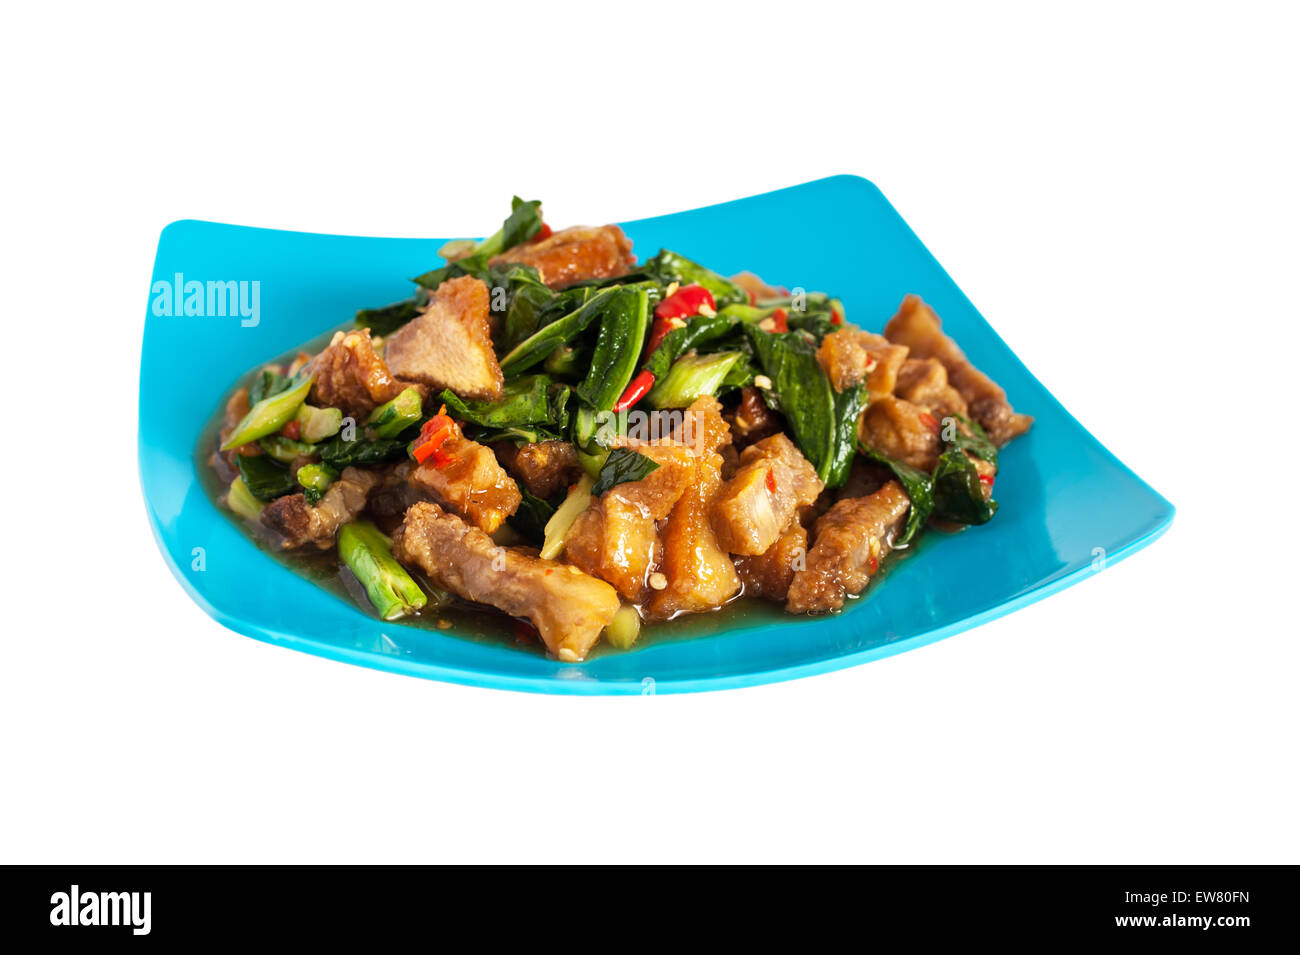 Thai food fried kale with crispy pork, Isolated on white background